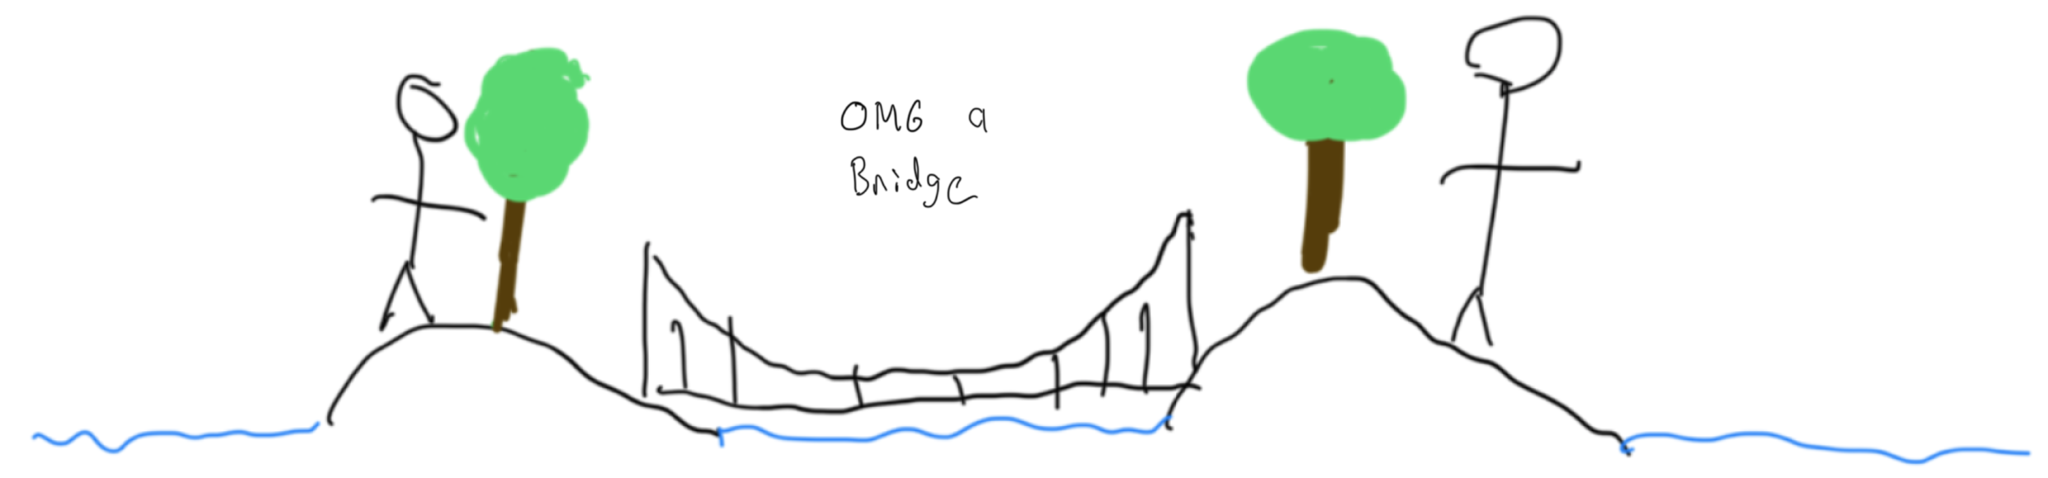 a bridge appears